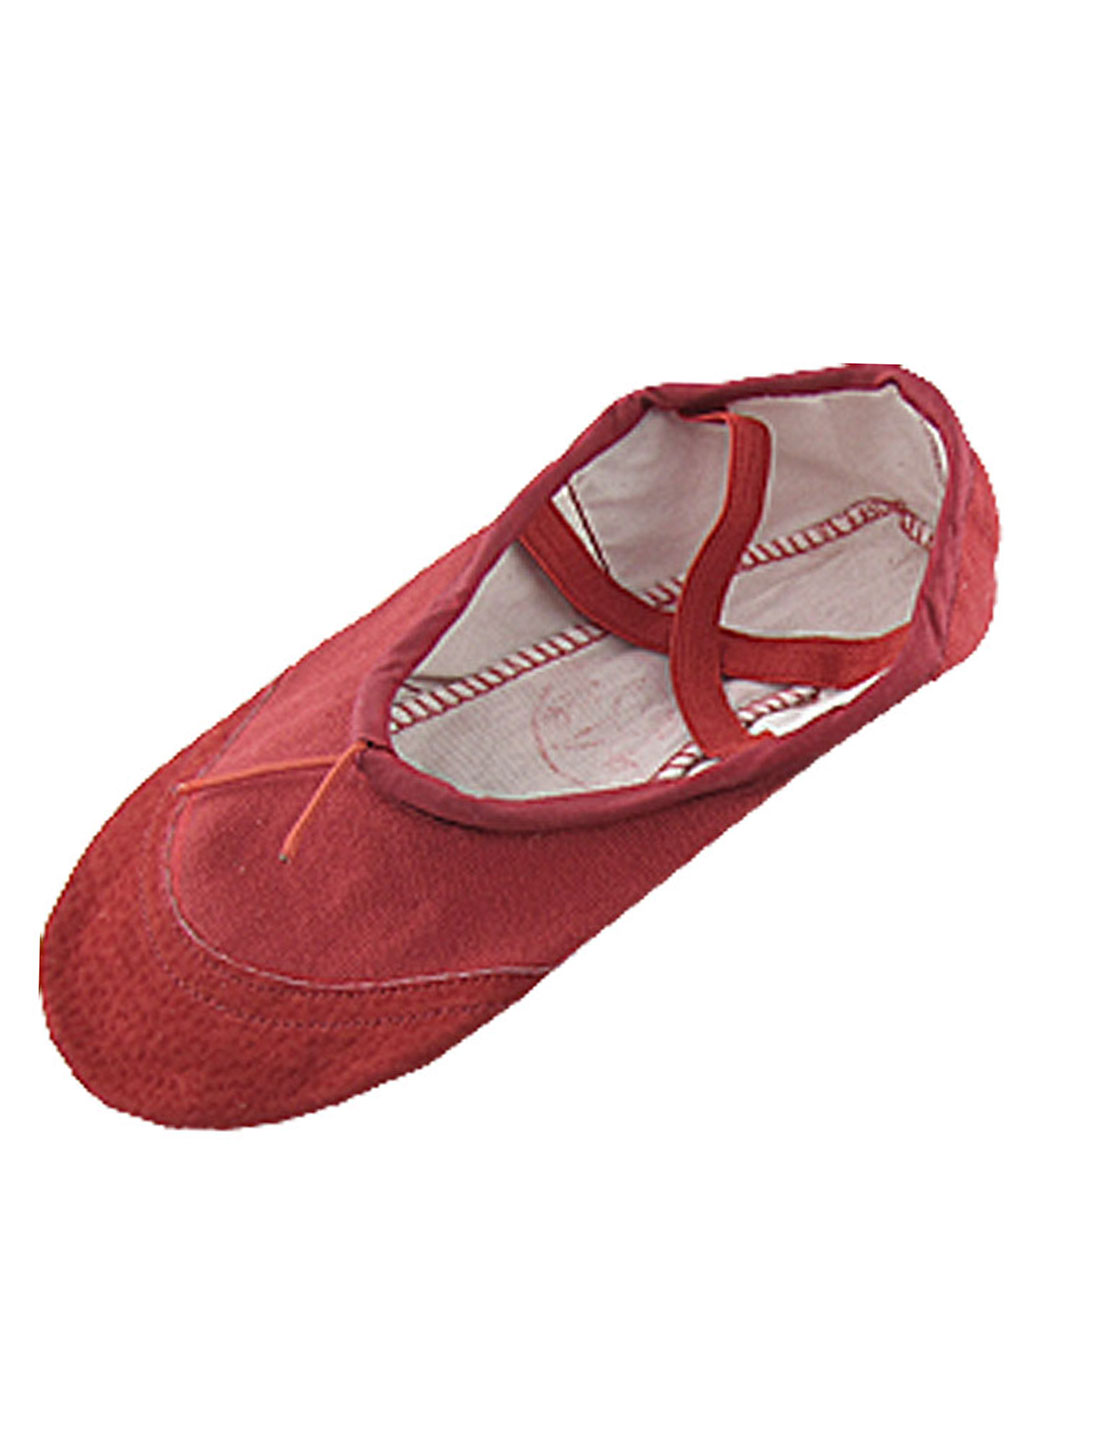 US-Sz-1-Dance-Ballet-Canvas-Flat-Red-Shoes-for-Girls